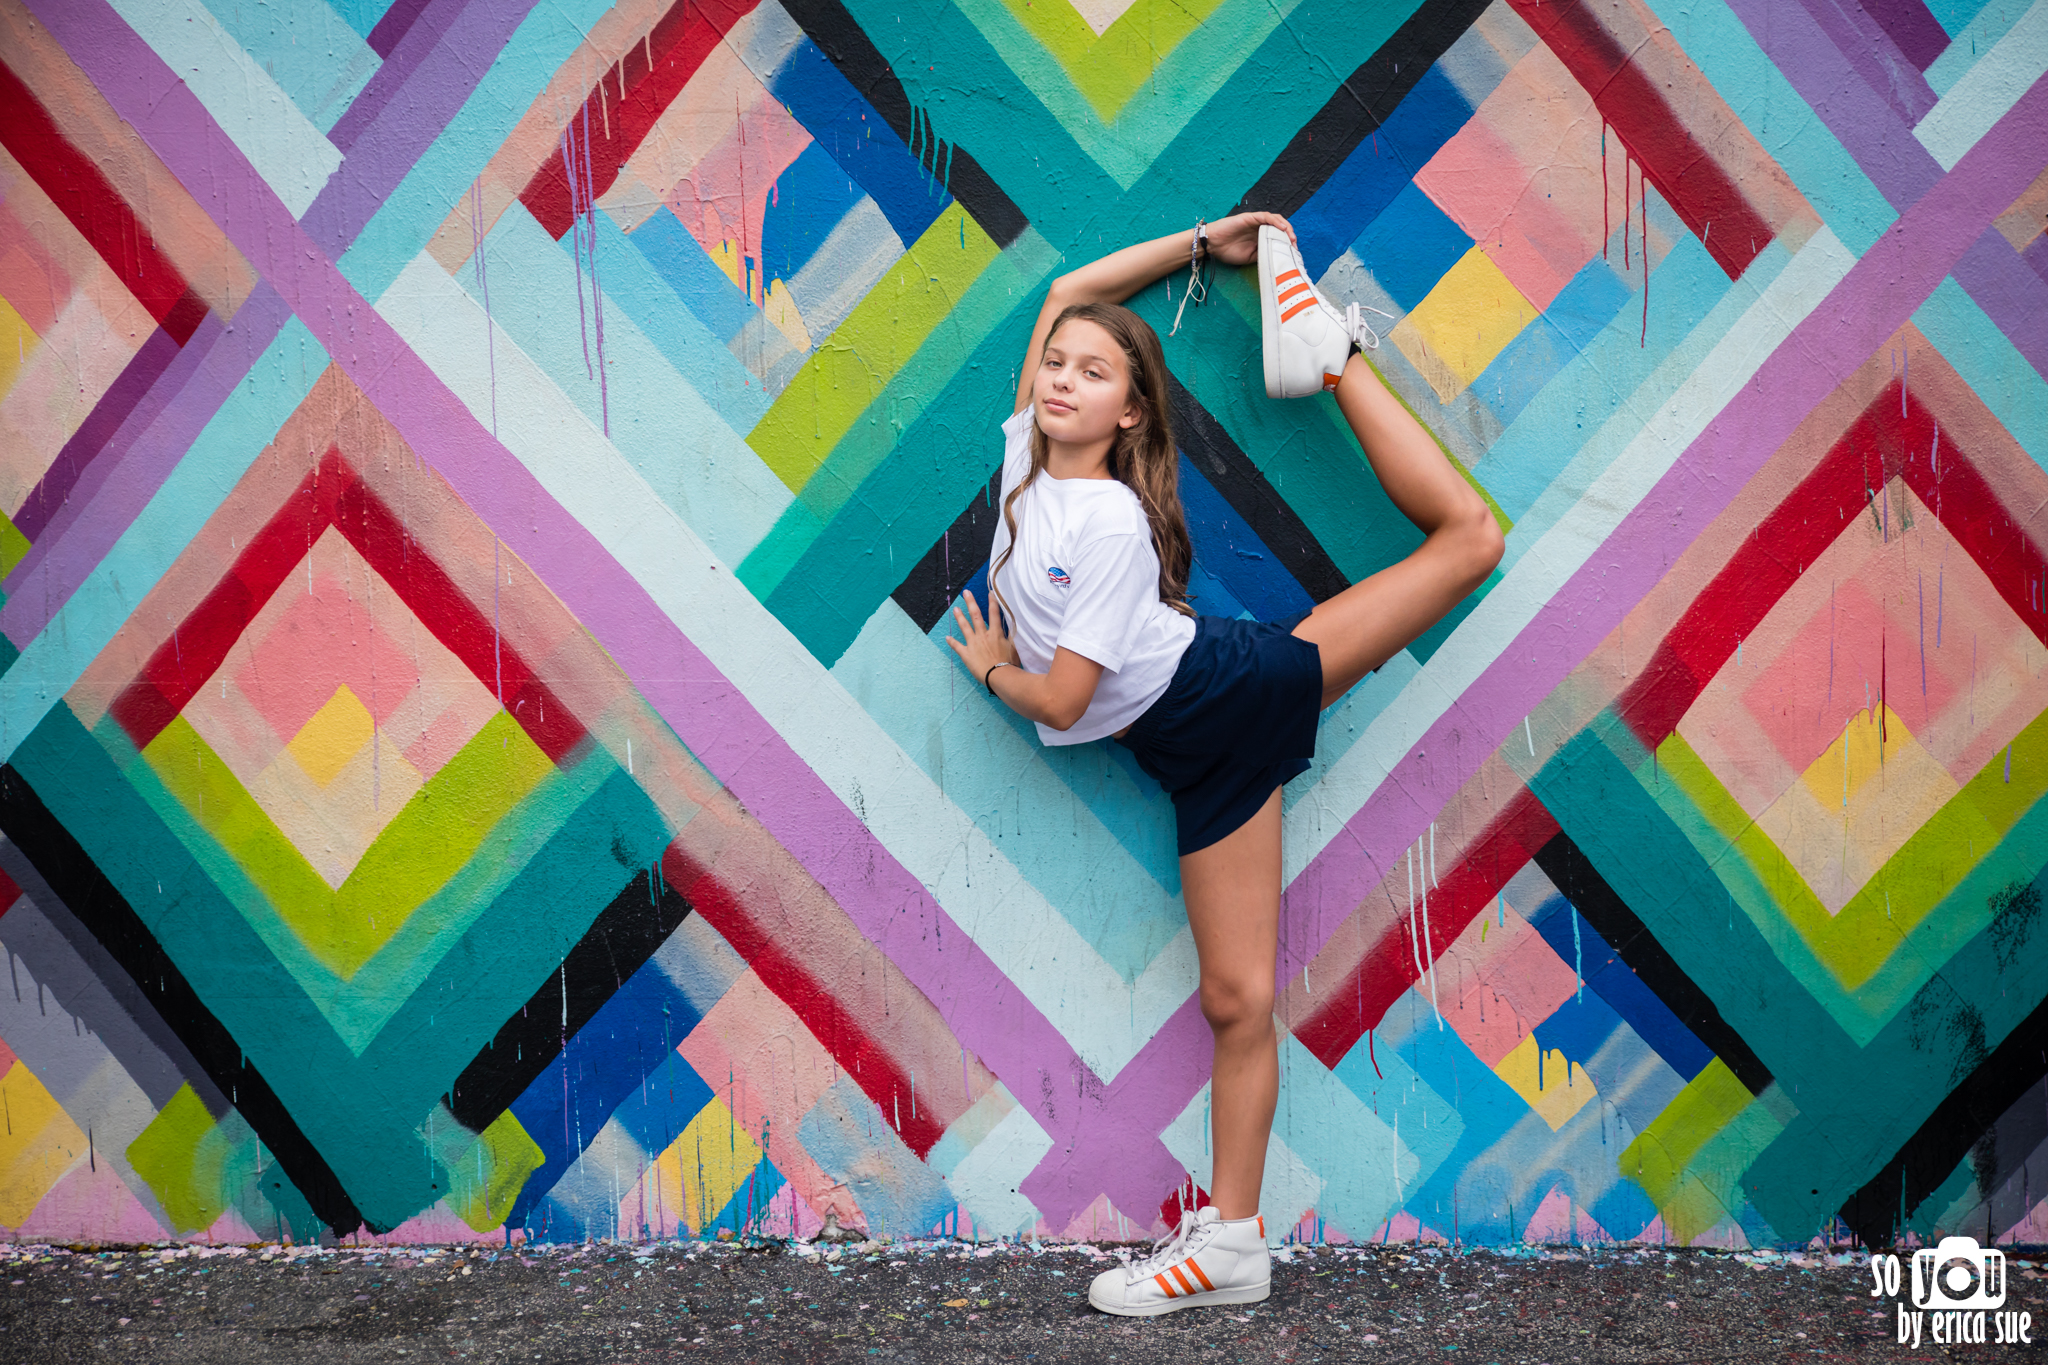 so-you-by-erica-sue-wynwood-walls-miami-photography-mitzvah-pre-shoot-5244.jpg